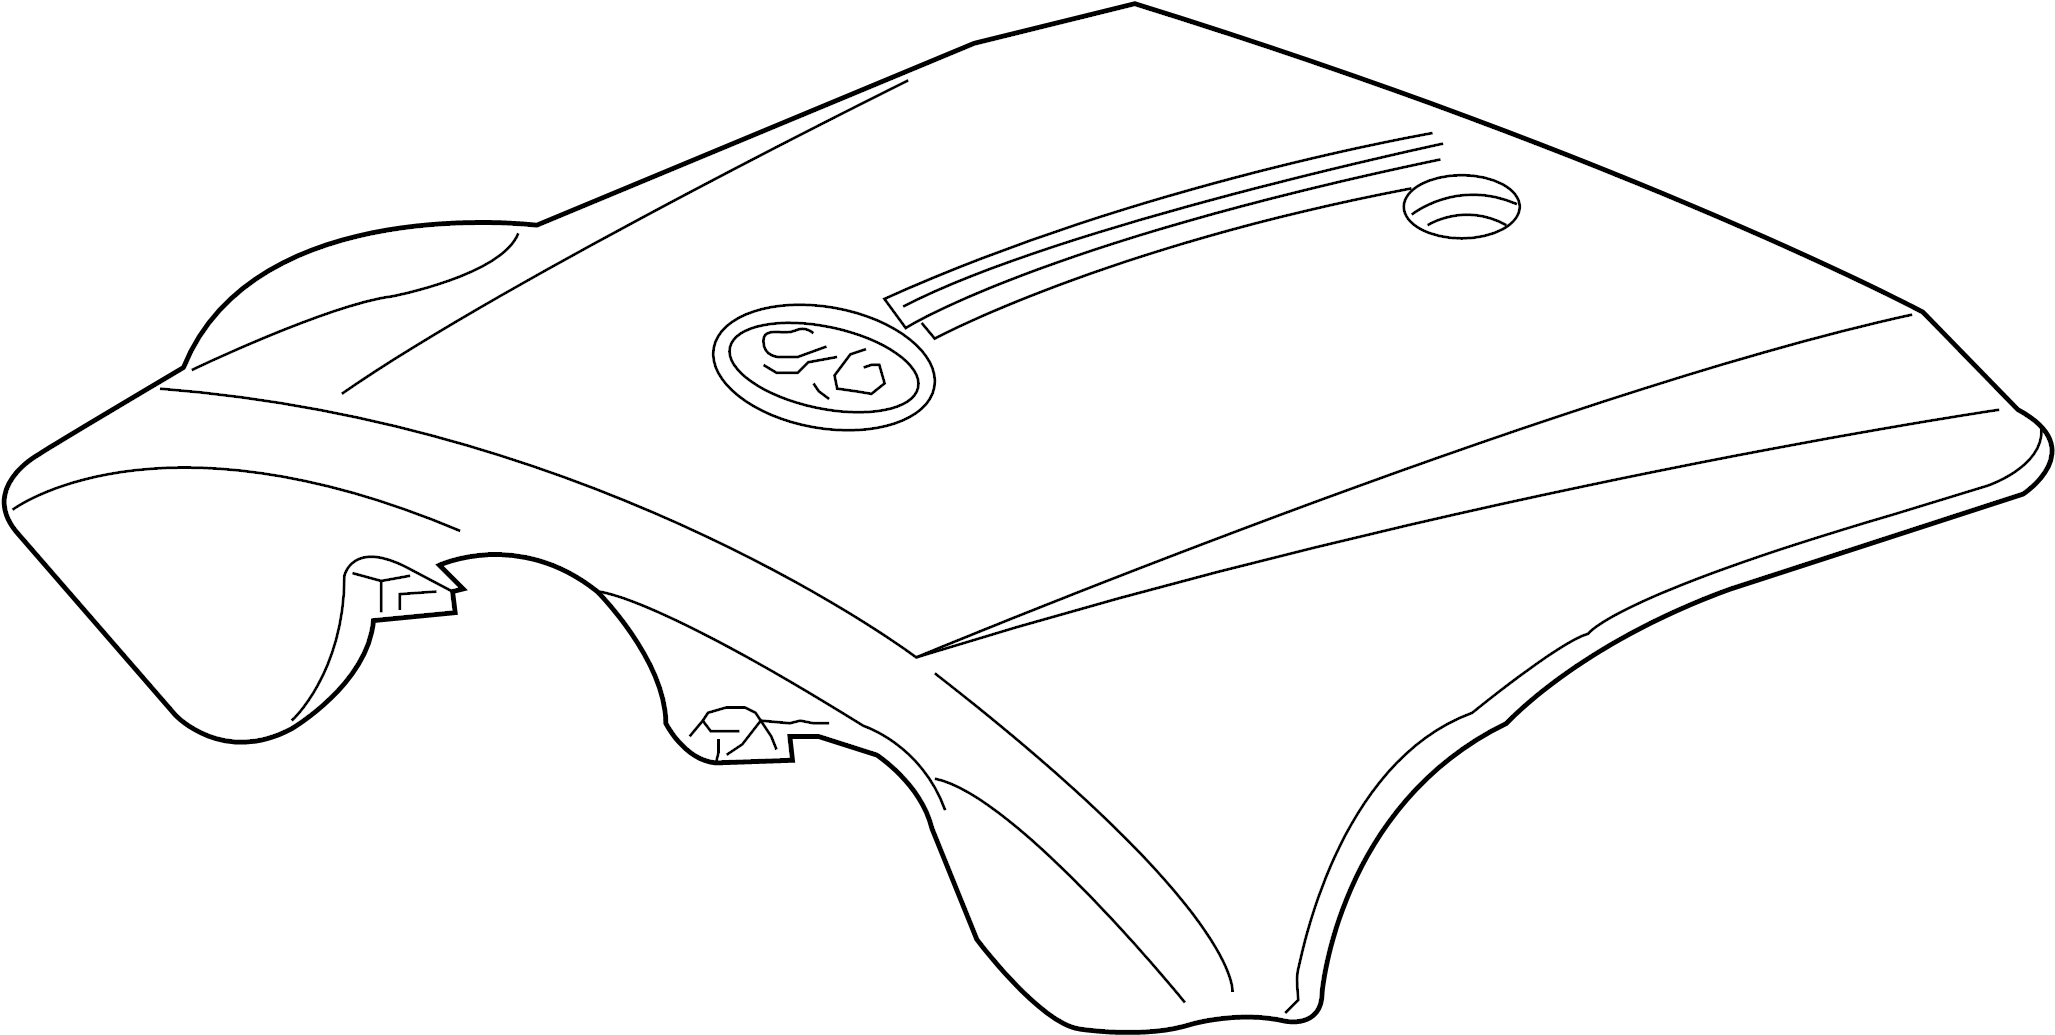 Mercury Marauder Engine Cover. From 1/29/99. To 1/29/99